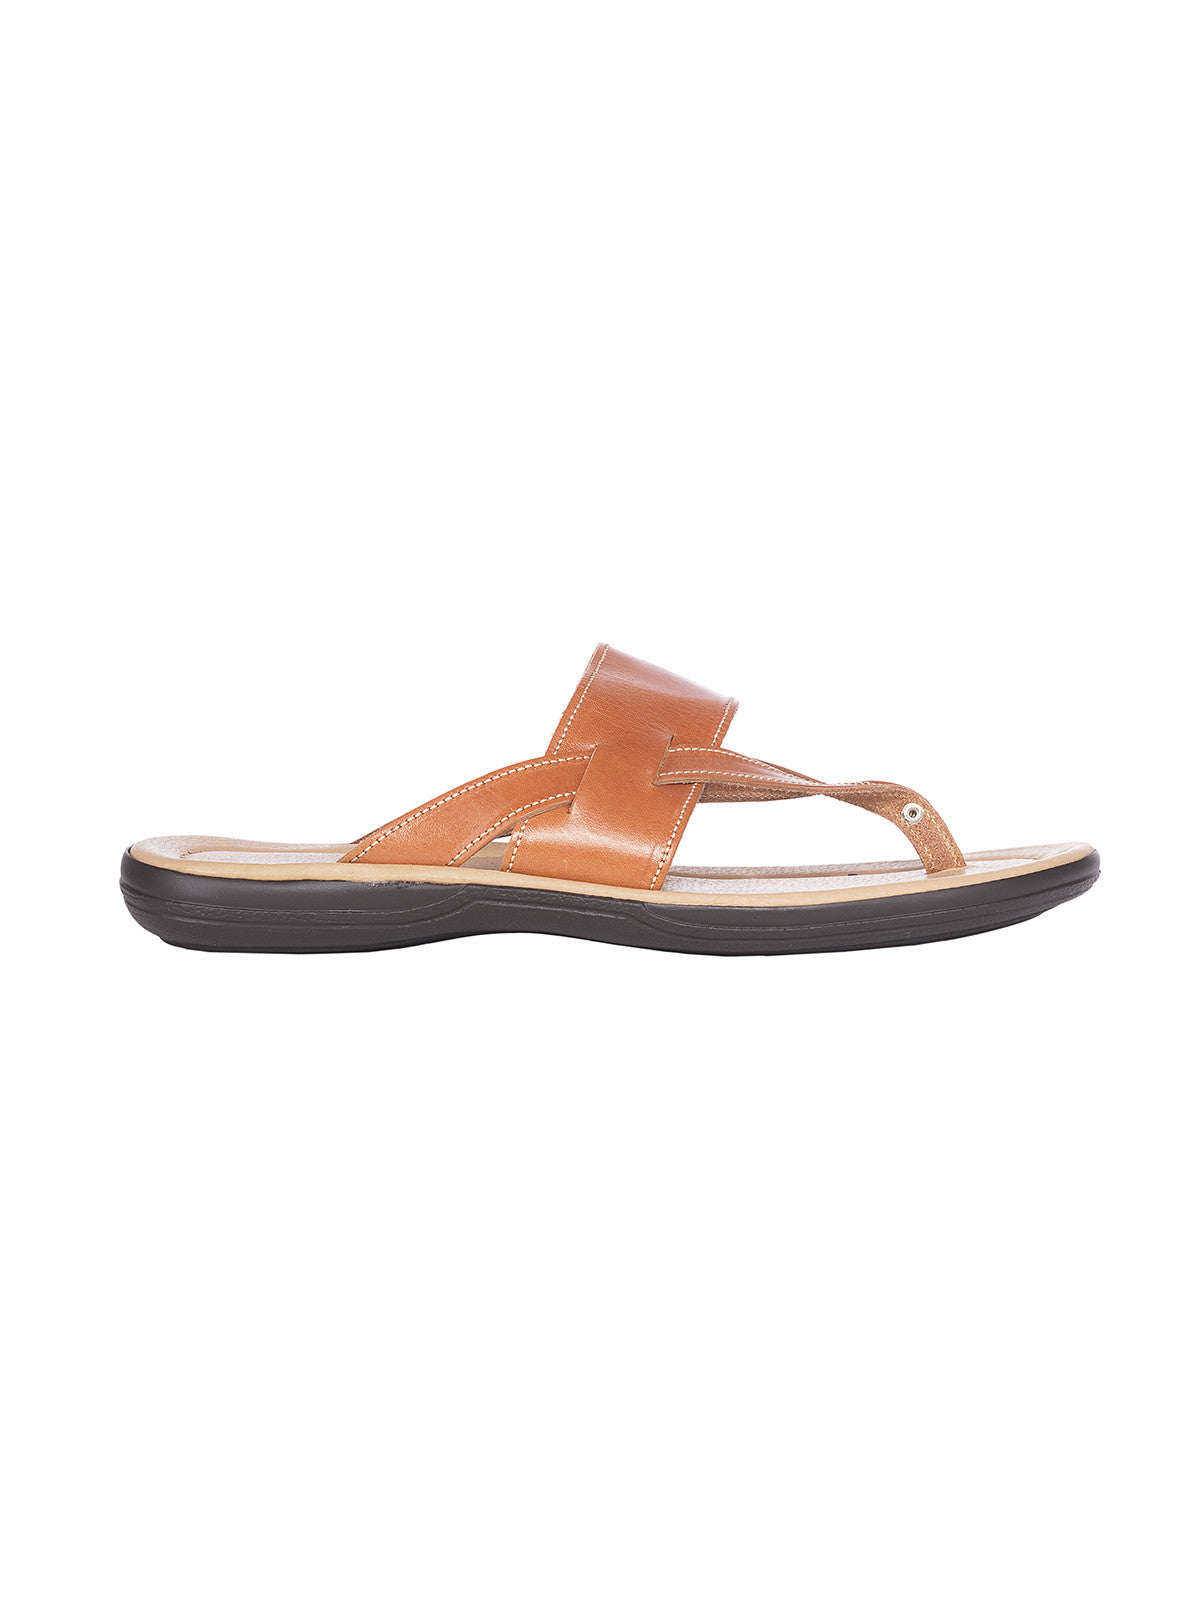 Iason Greek Sandals